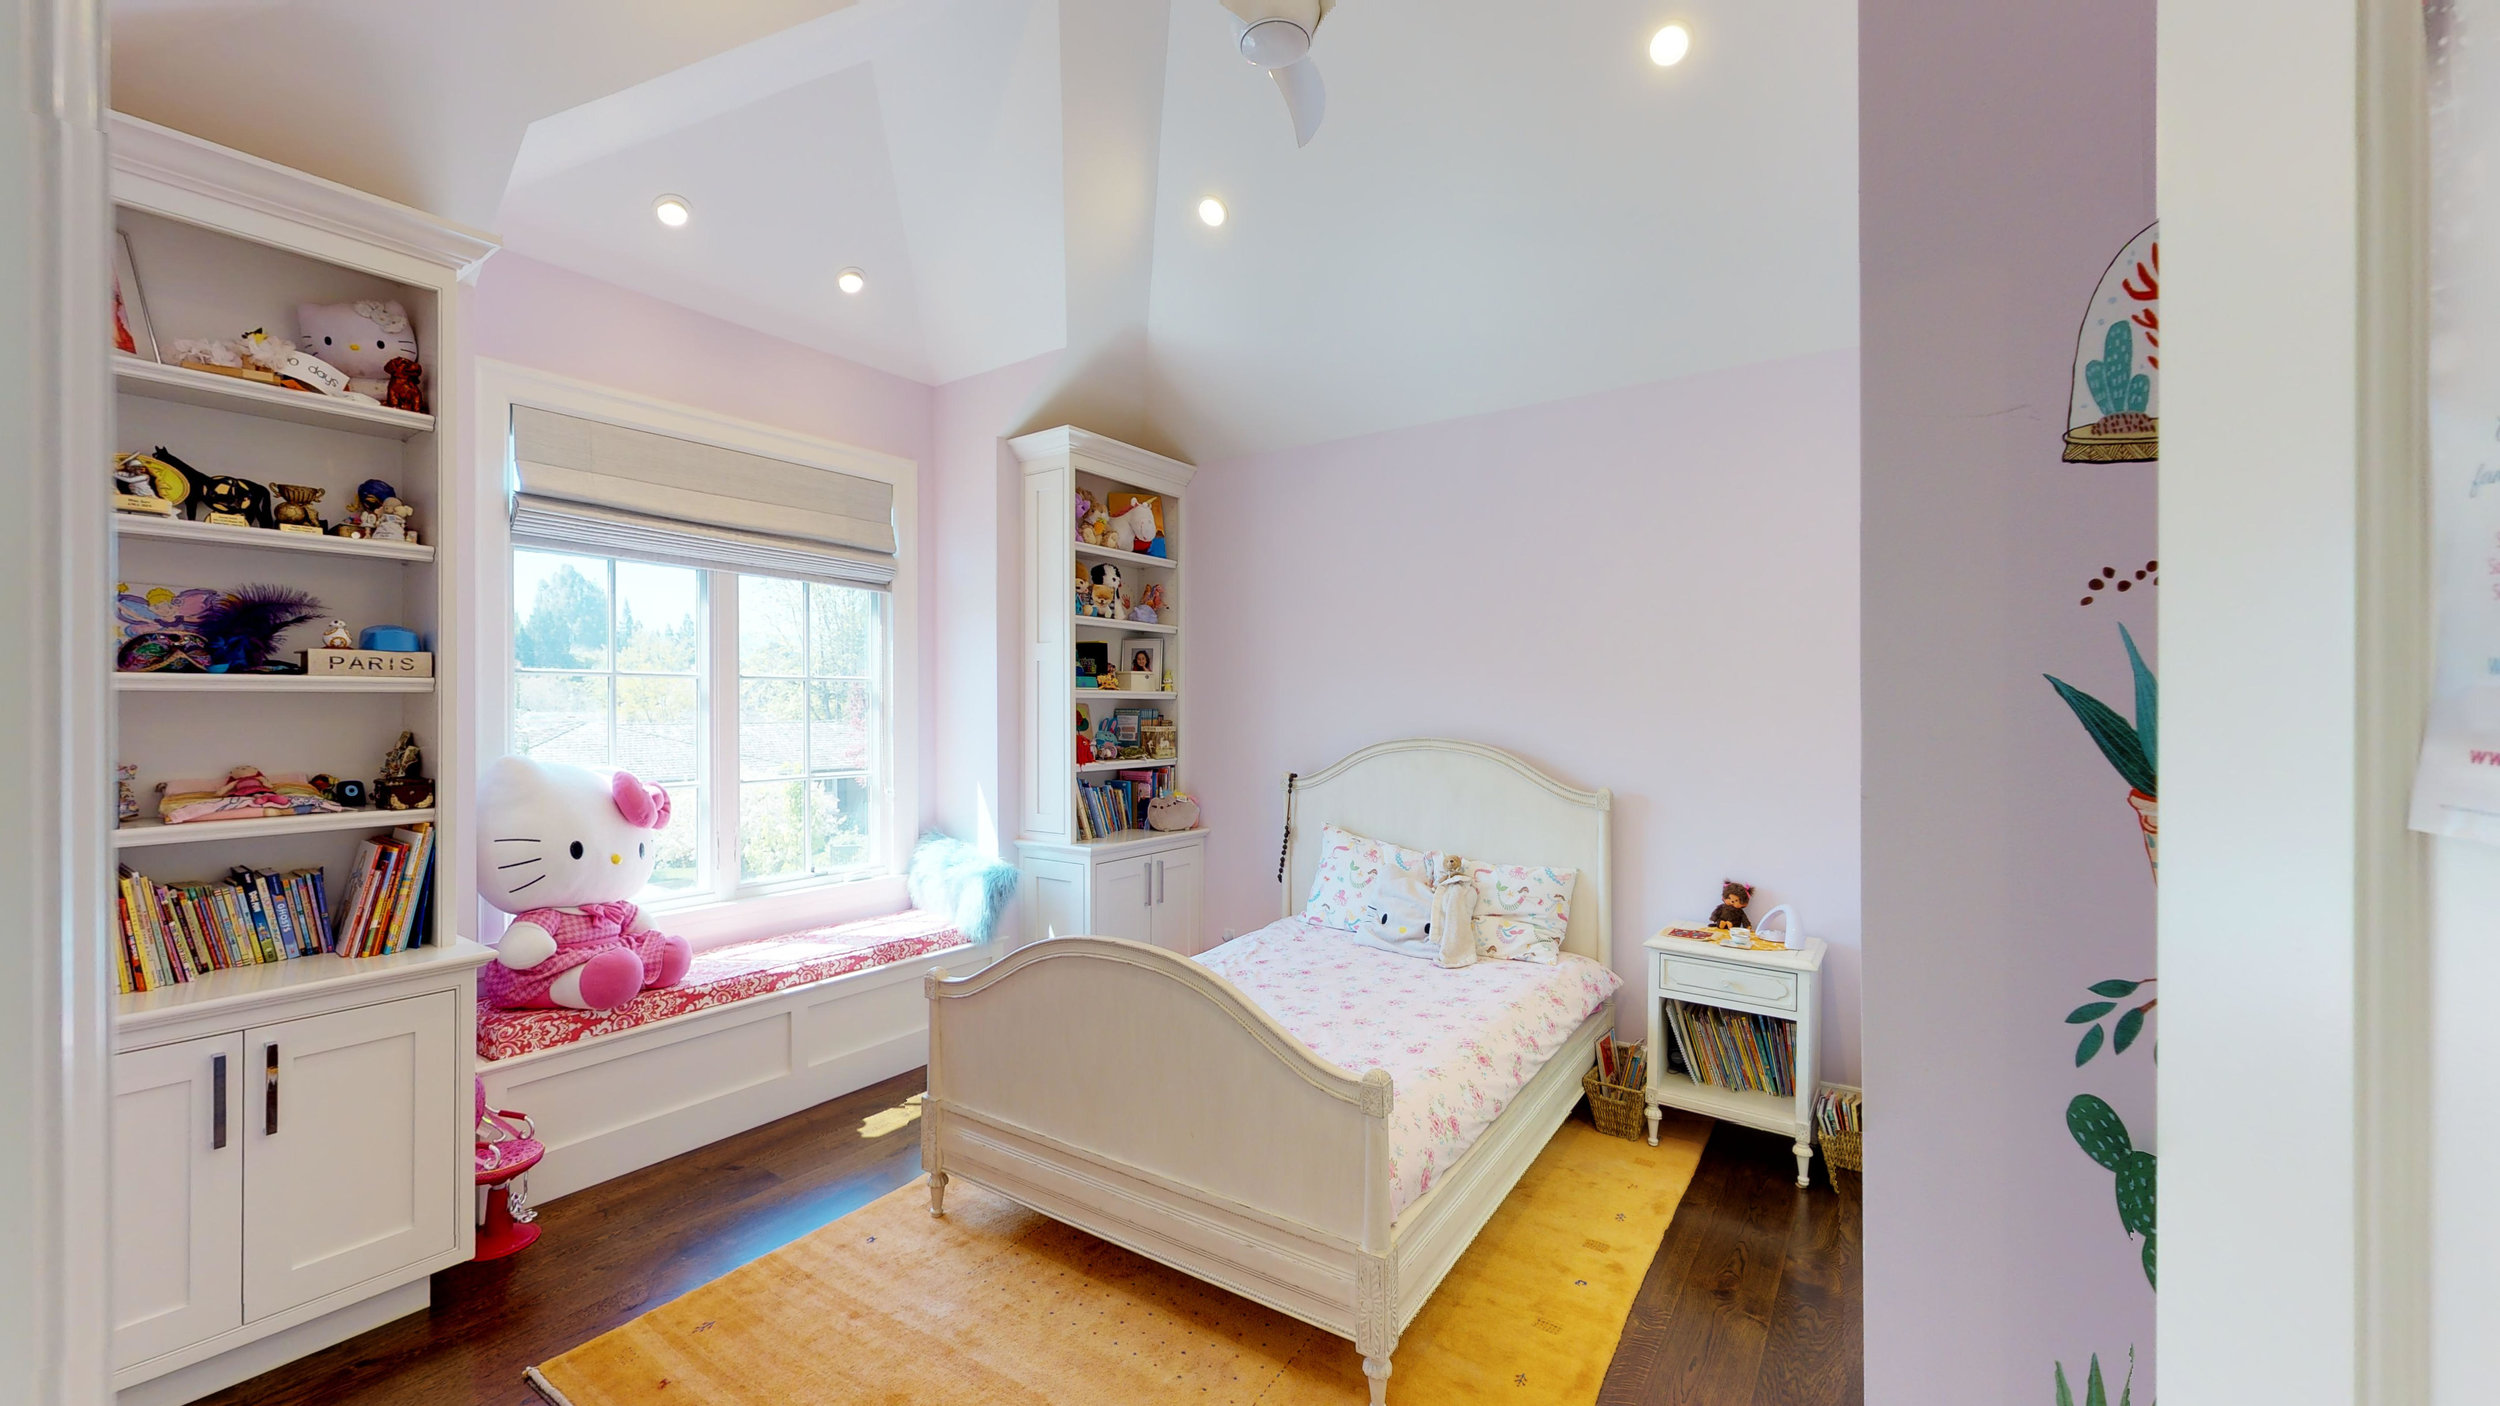 19 - Children's Bedroom 1.jpg